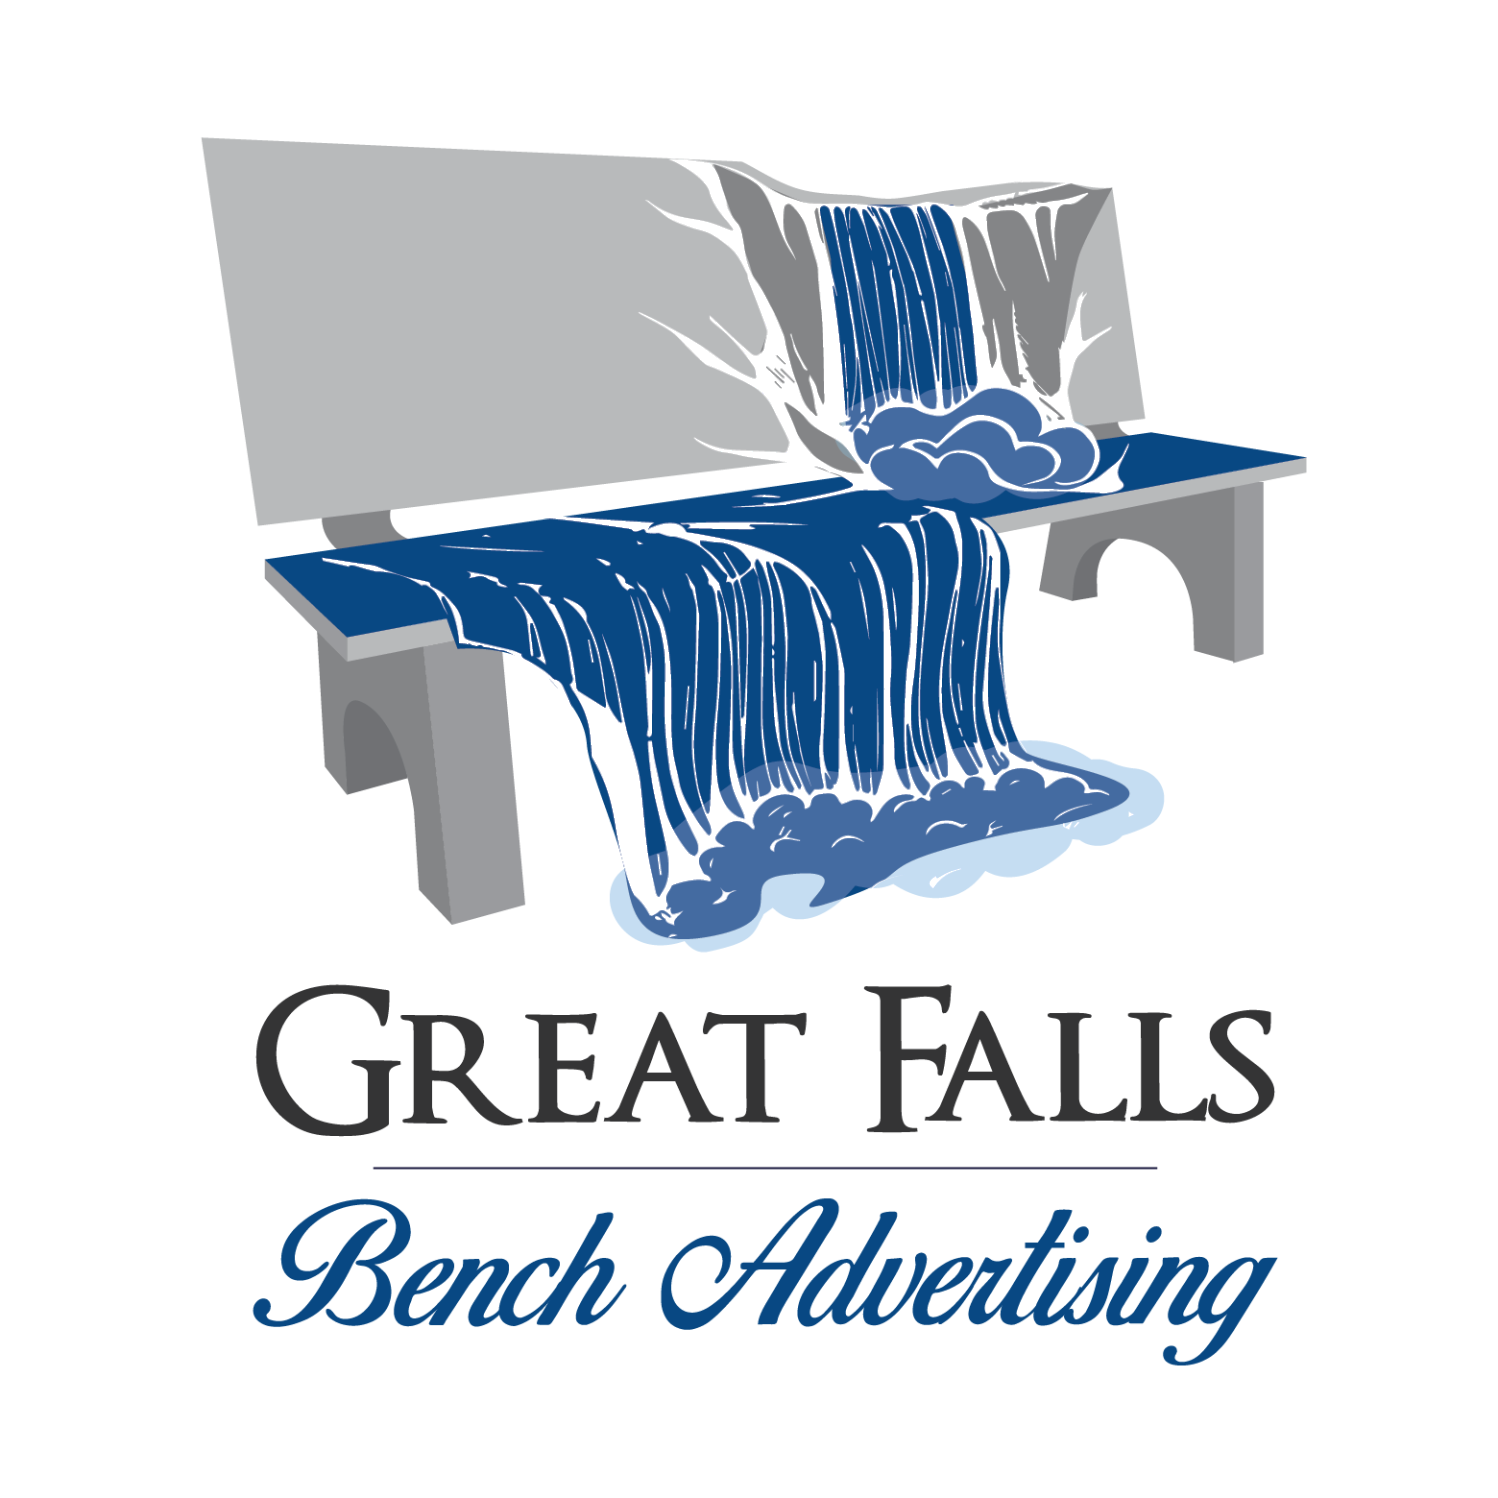 Great Falls Bench Advertising